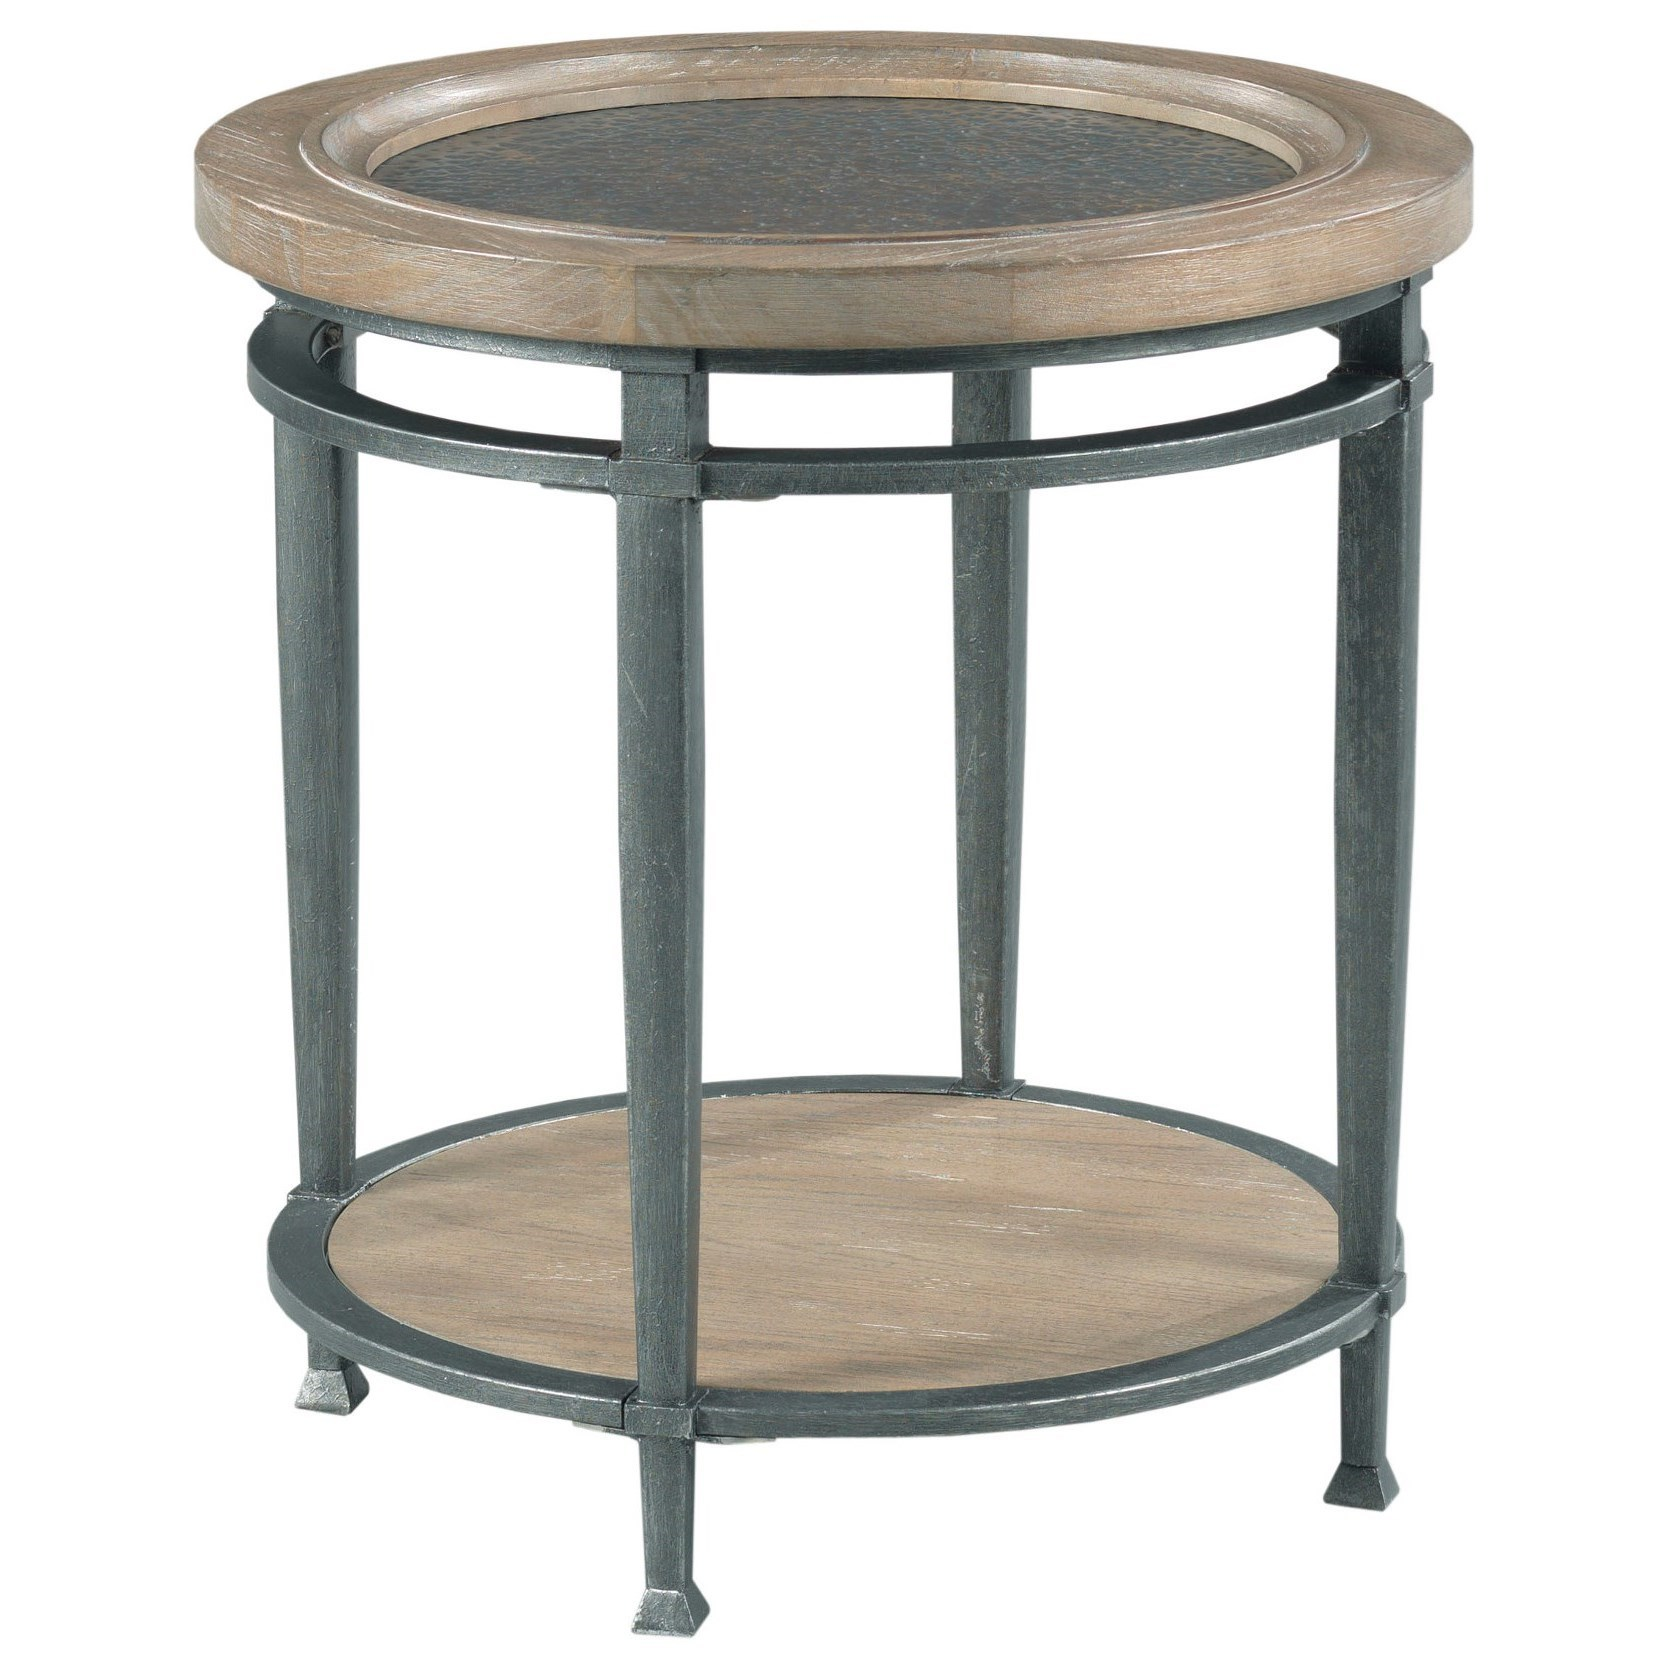 Fortworth End Table by Hammary at Crowley Furniture & Mattress